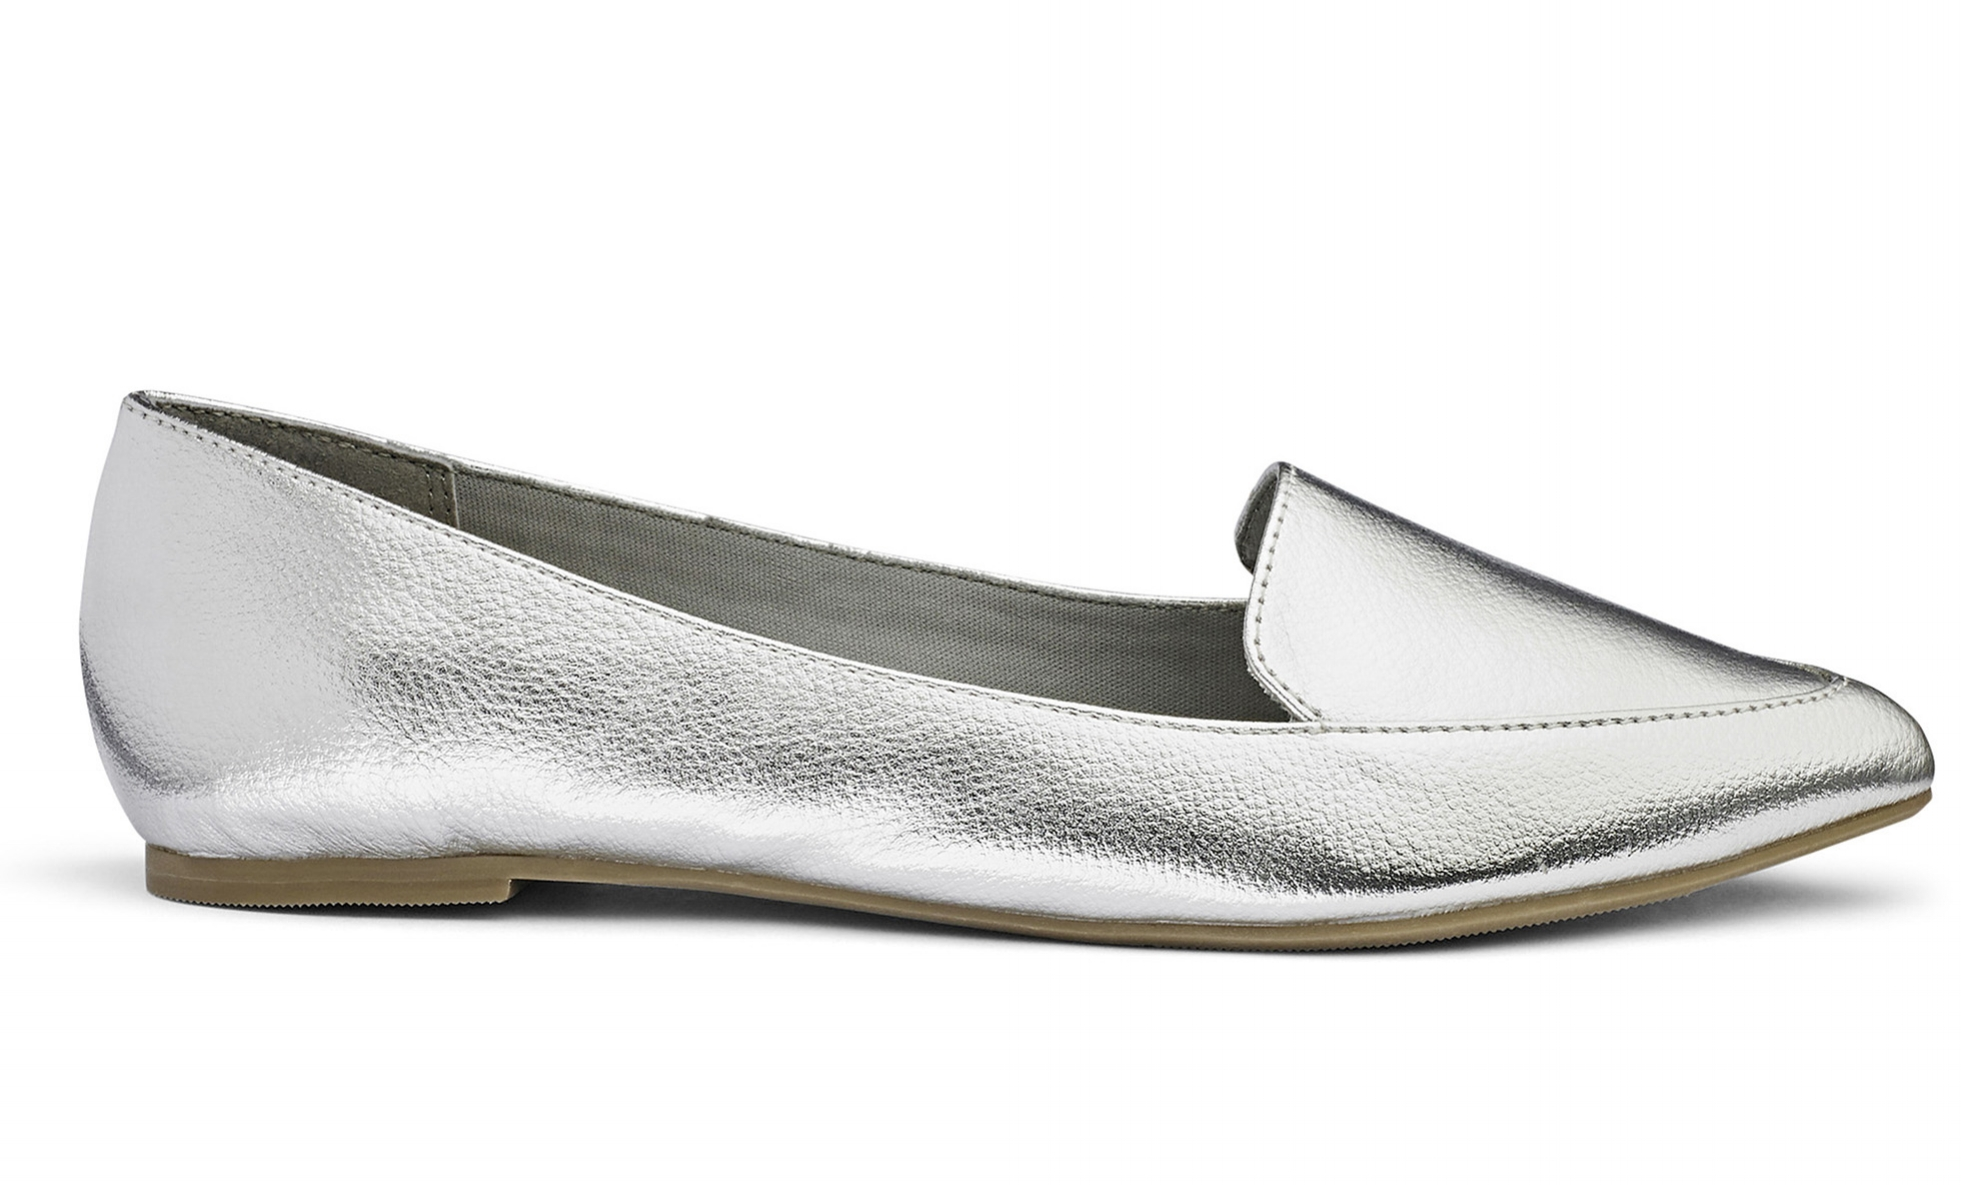 9.  Silver loafers, £15 Sole Diva, JD Williams